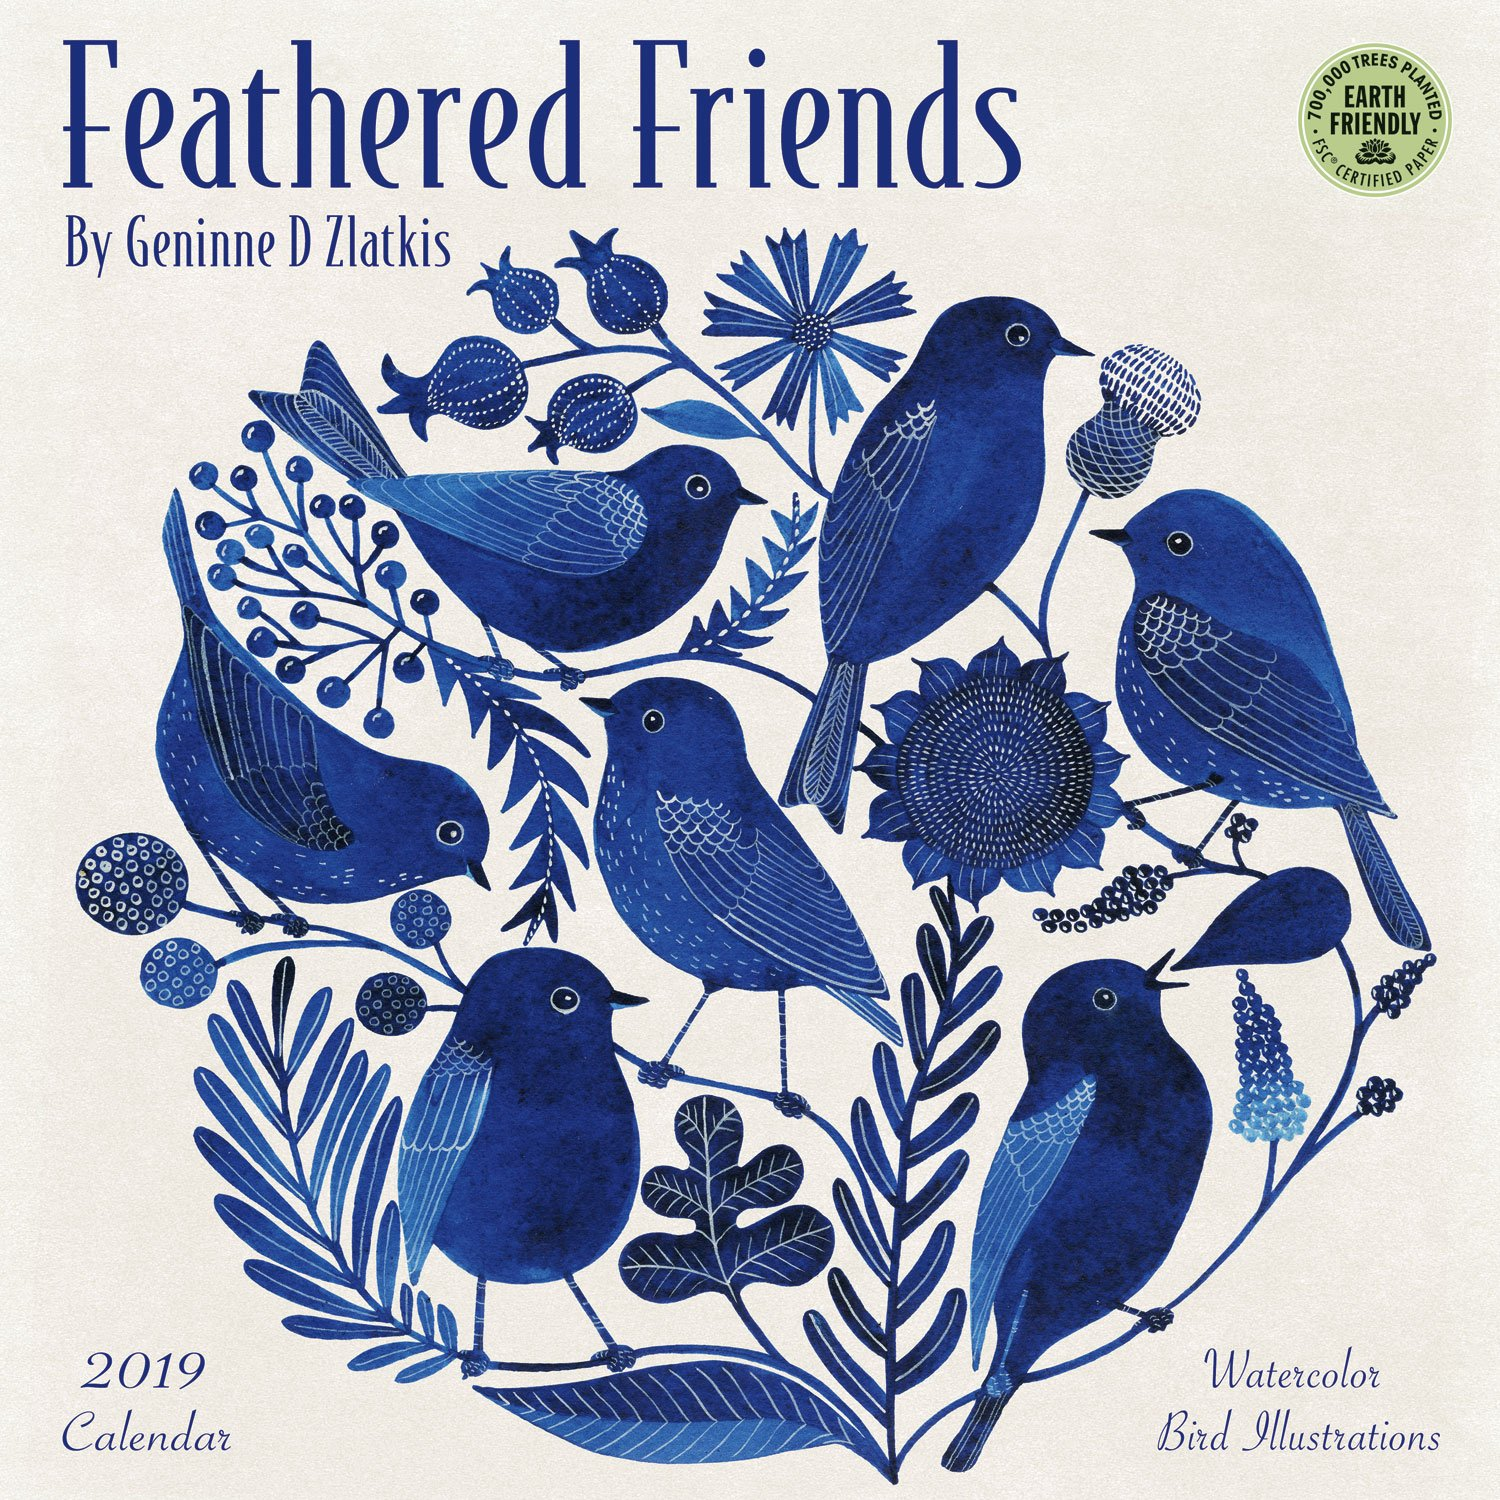 feathered friends 2019 wall calendar watercolor bird illustrations